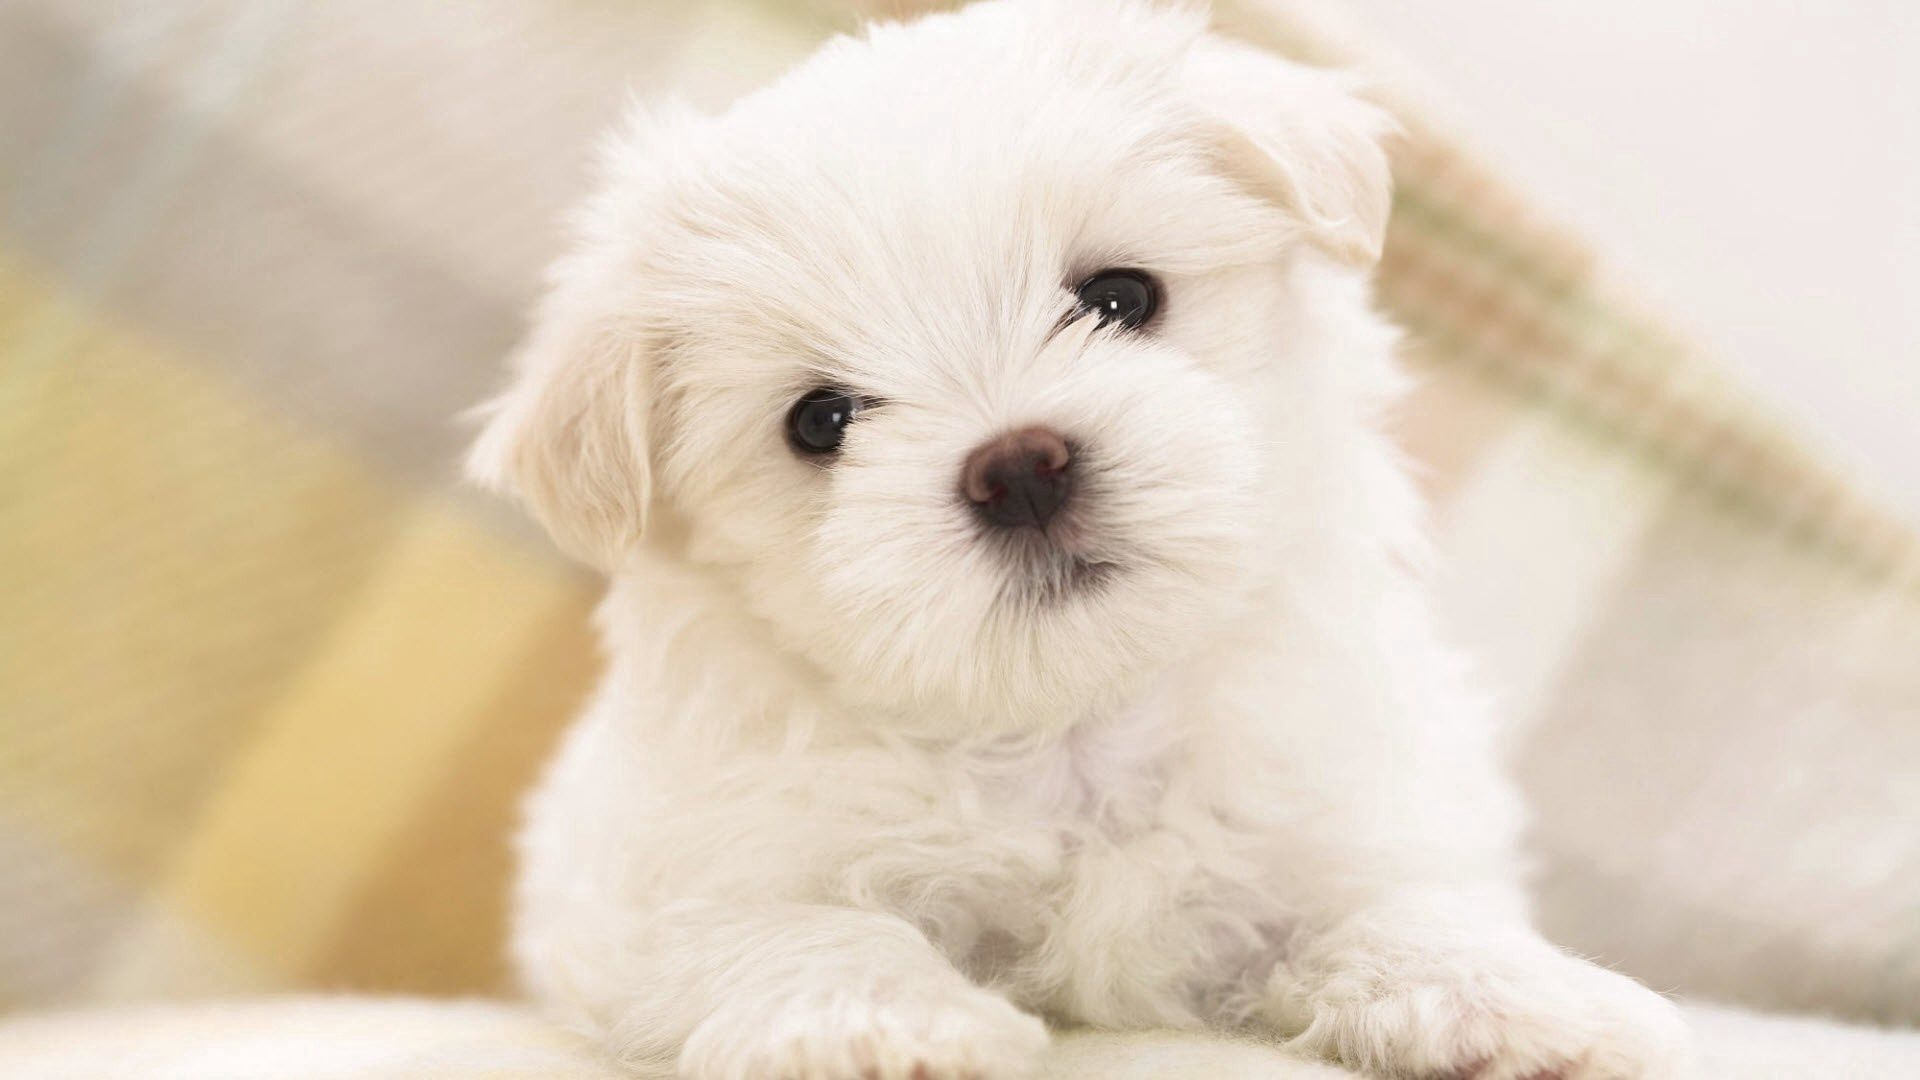 72795 Screensavers and Wallpapers Puppy for phone. Download Animals, Dog, Puppy, Kid, Tot pictures for free